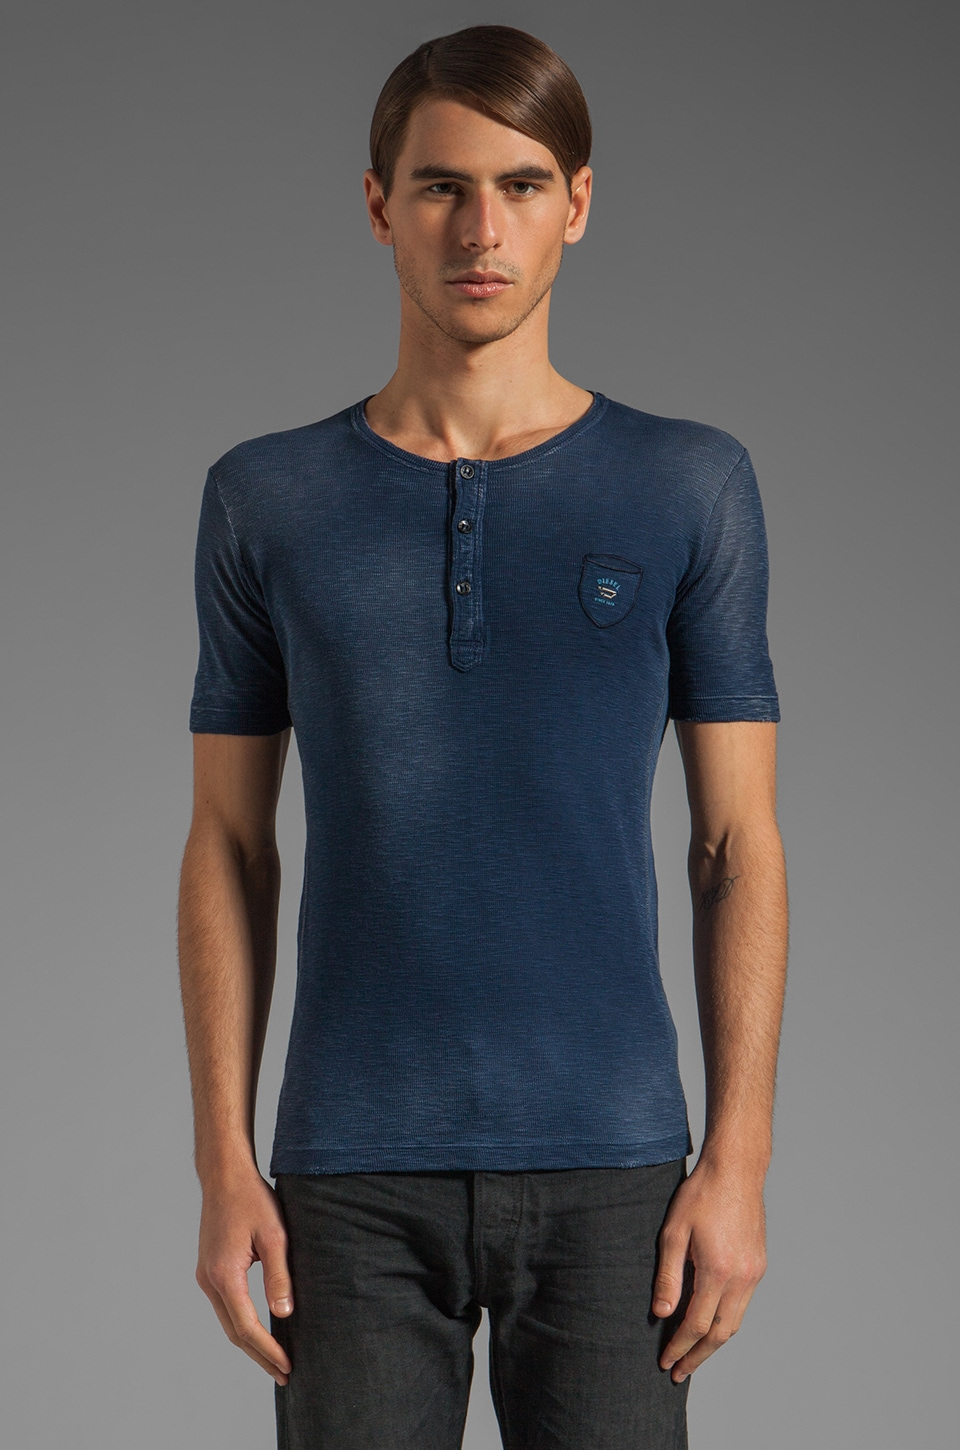 Diesel Distillation Henley Tee in Midnight